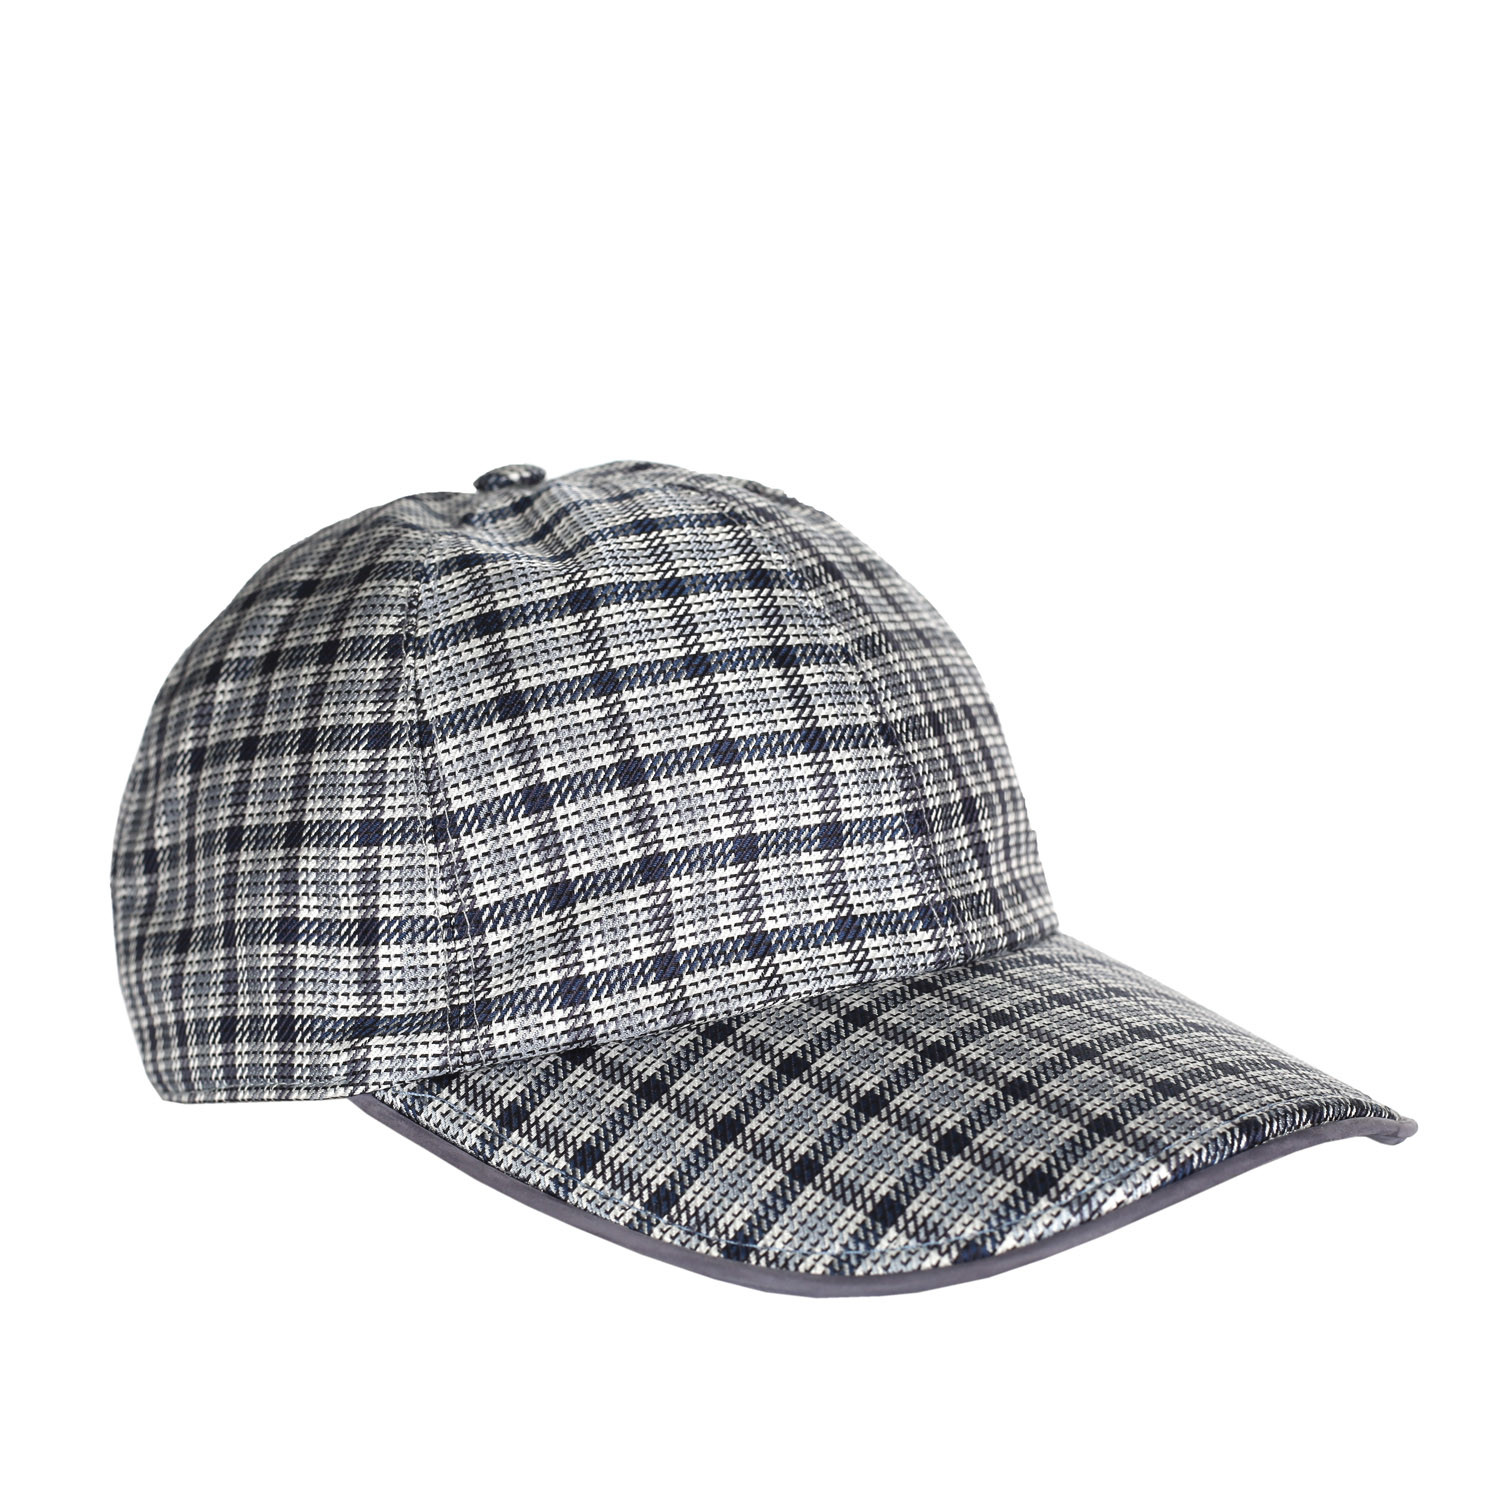 7dd0f8f5858 A5e48c28c6c2c8c228751ba90bd0cdee medium · Check Print Leather Trim Baseball  Hat ...